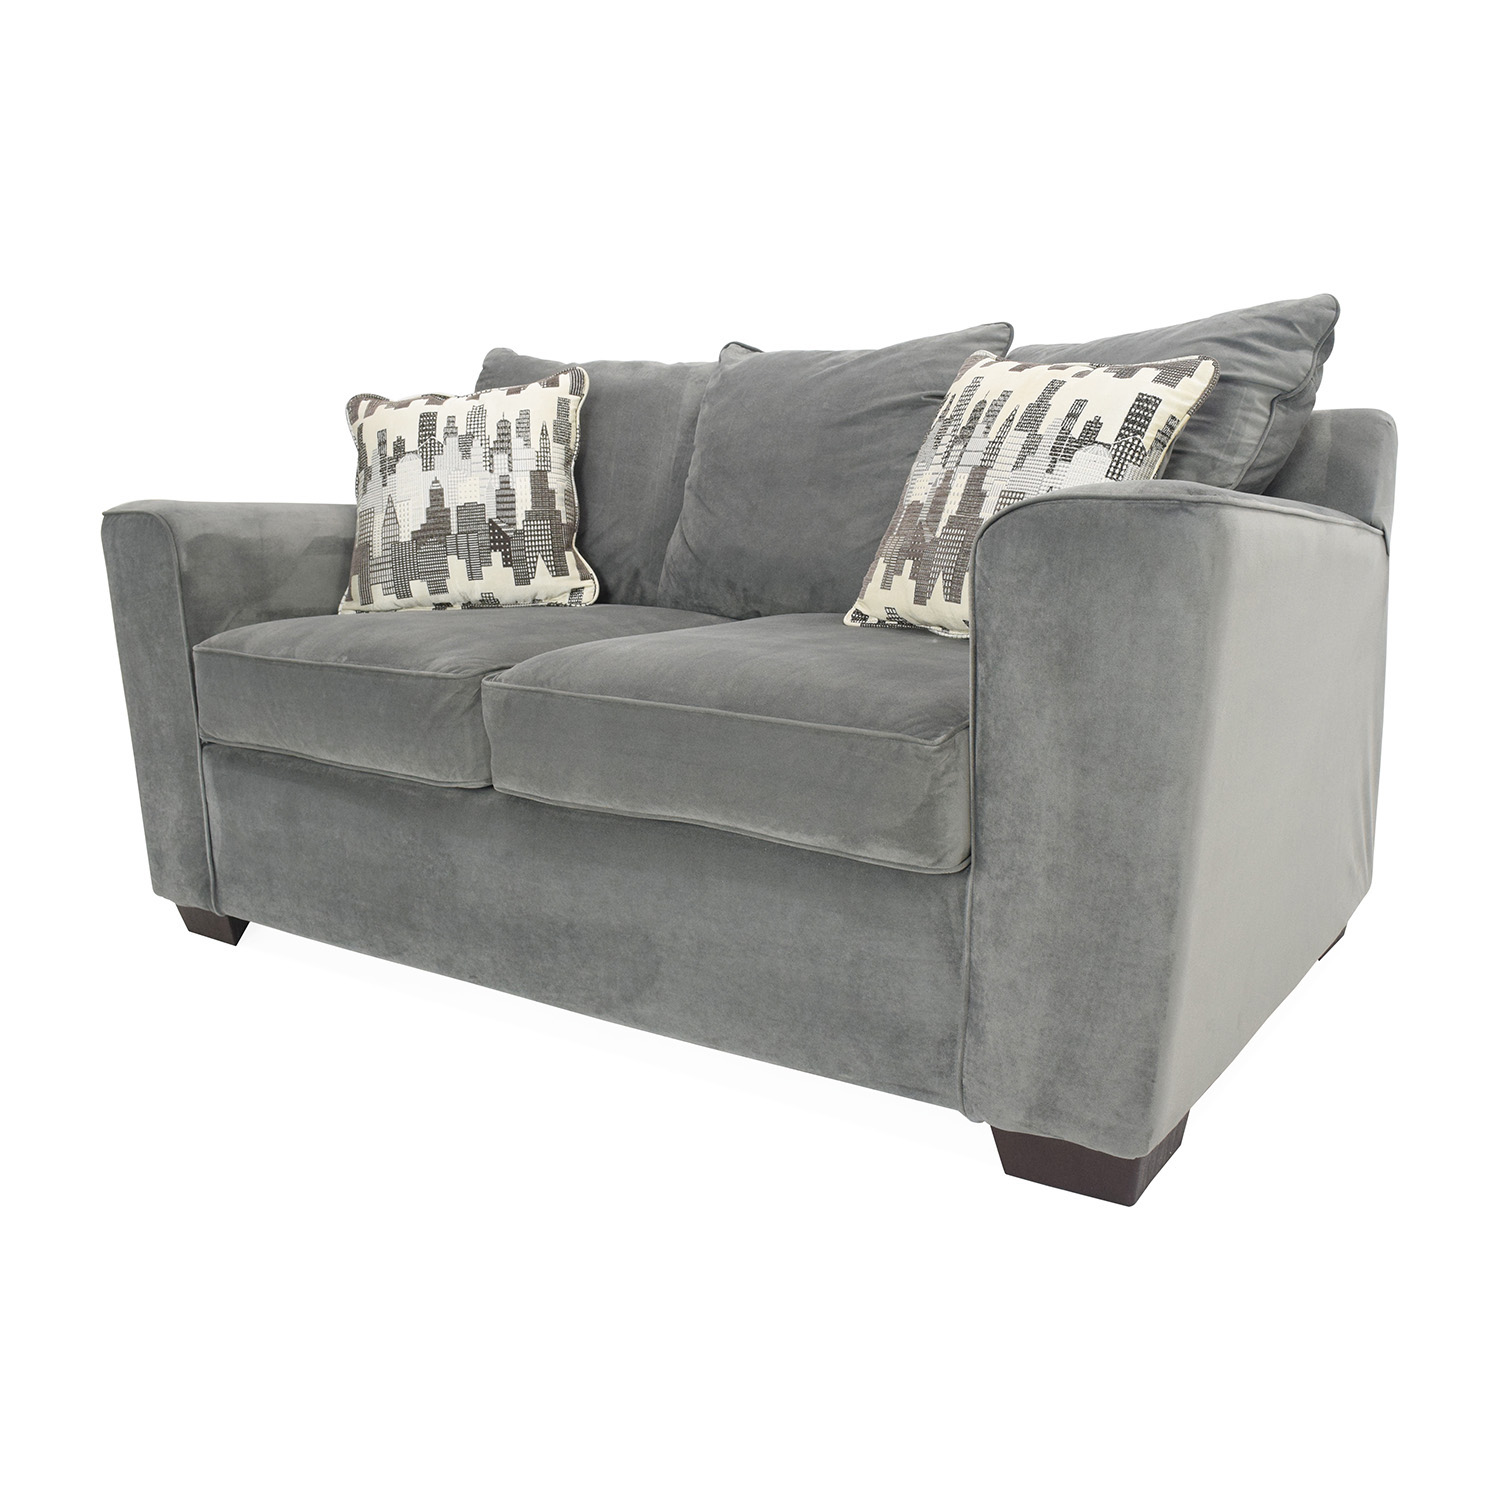 62 Off Bob 39 S Furniture Bob 39 S Comfy Loveseat Sofas